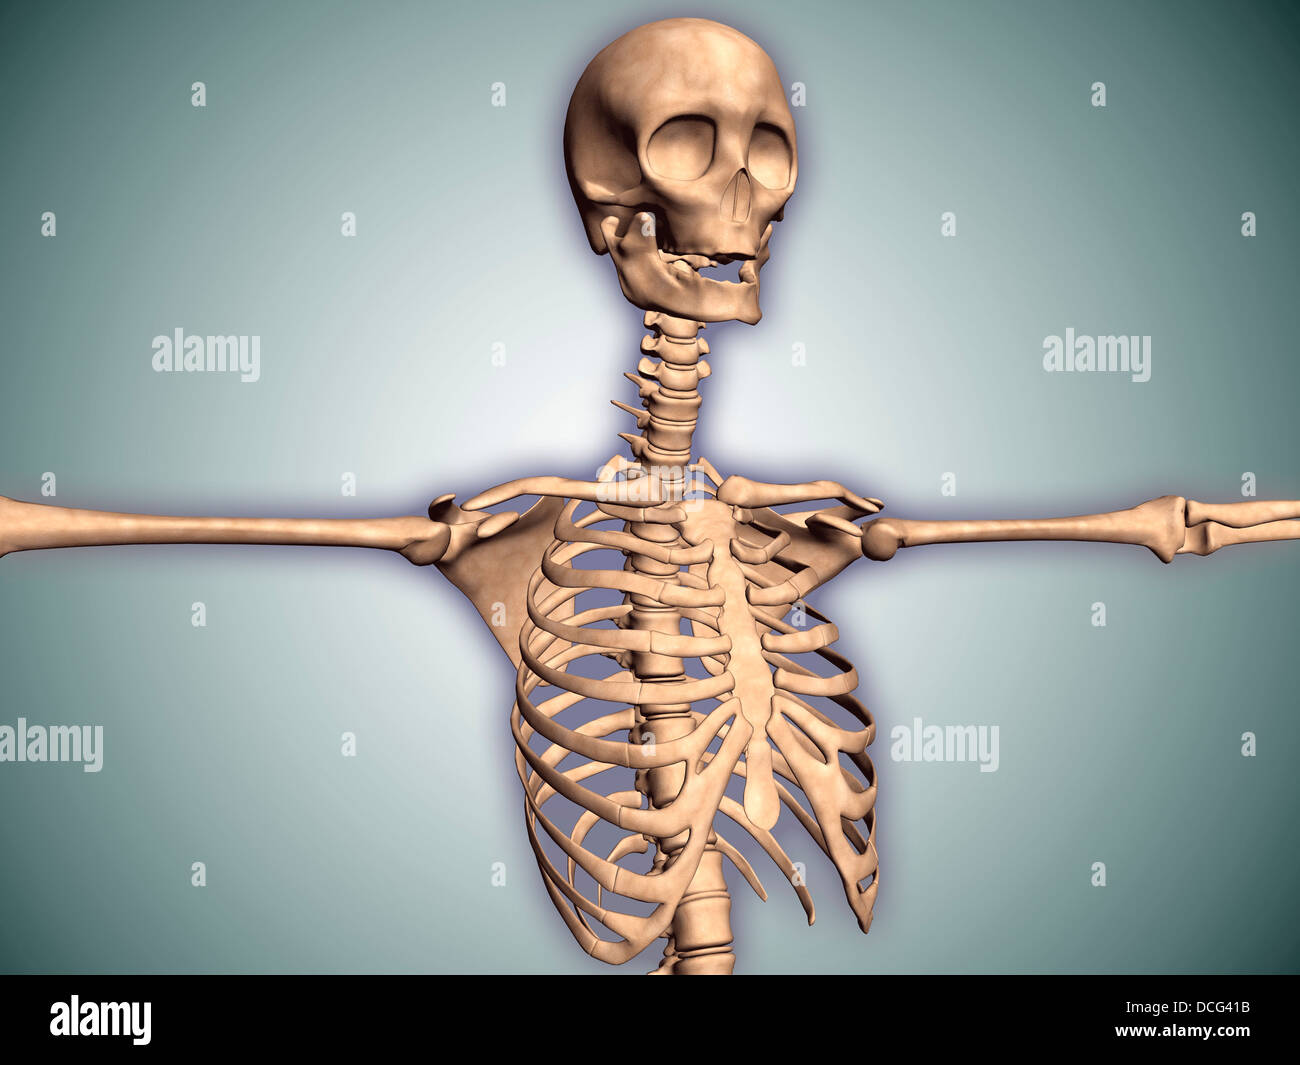 Conceptual Image Of Human Rib Cage And Spinal Cord With Skull Stock